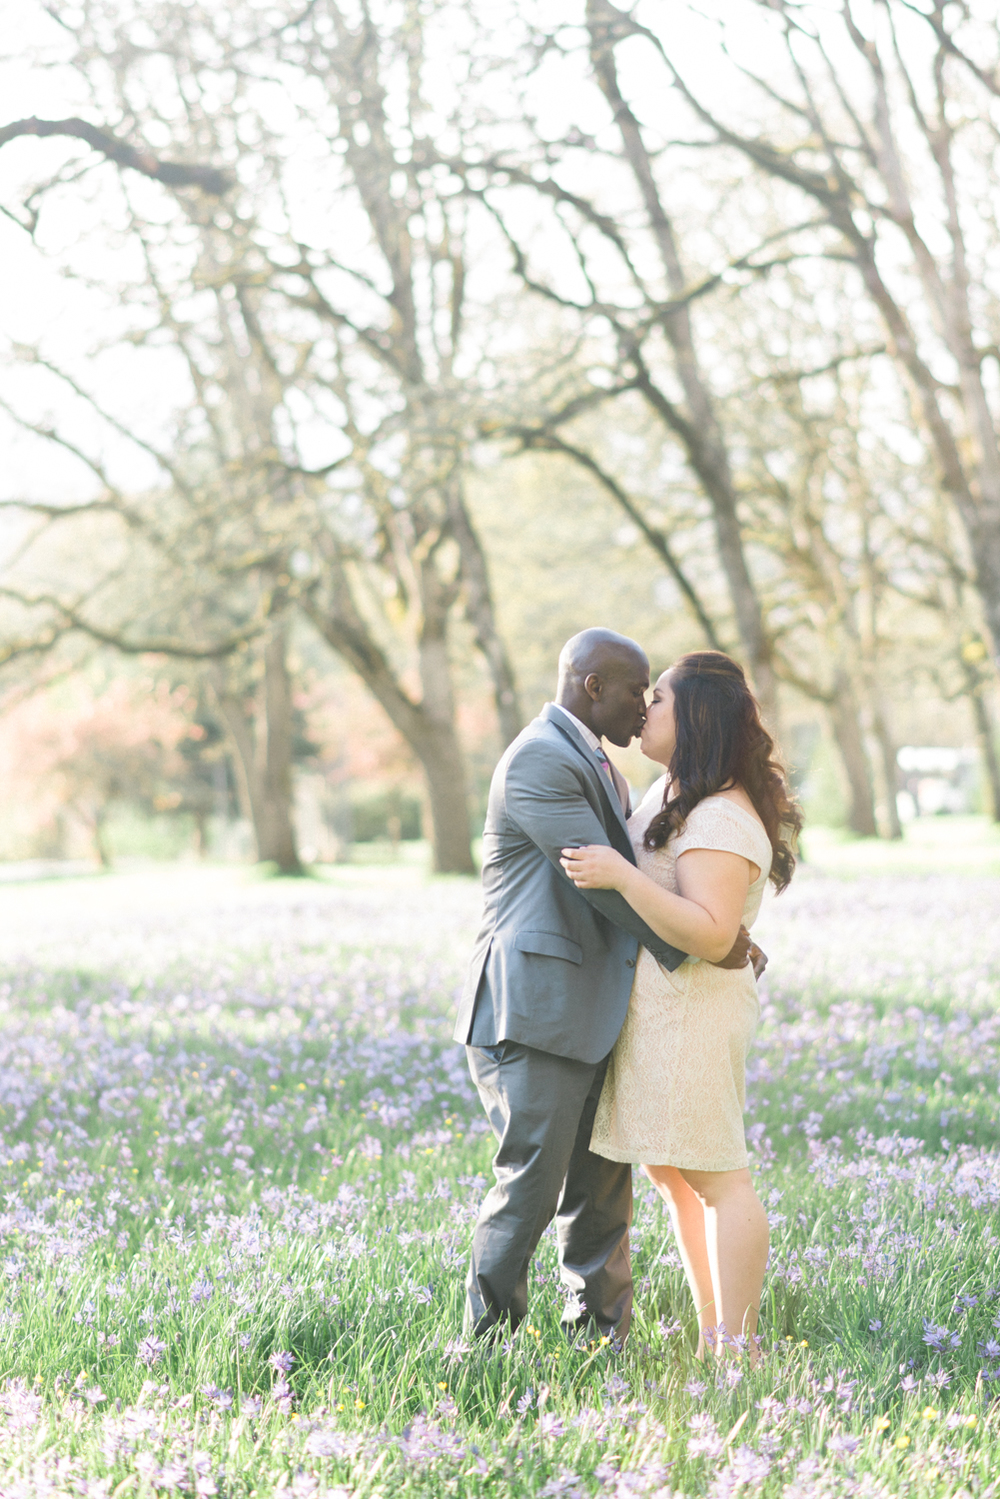 romantic-salem-engagement-photos-bush-park-shelley-marie-photo-4